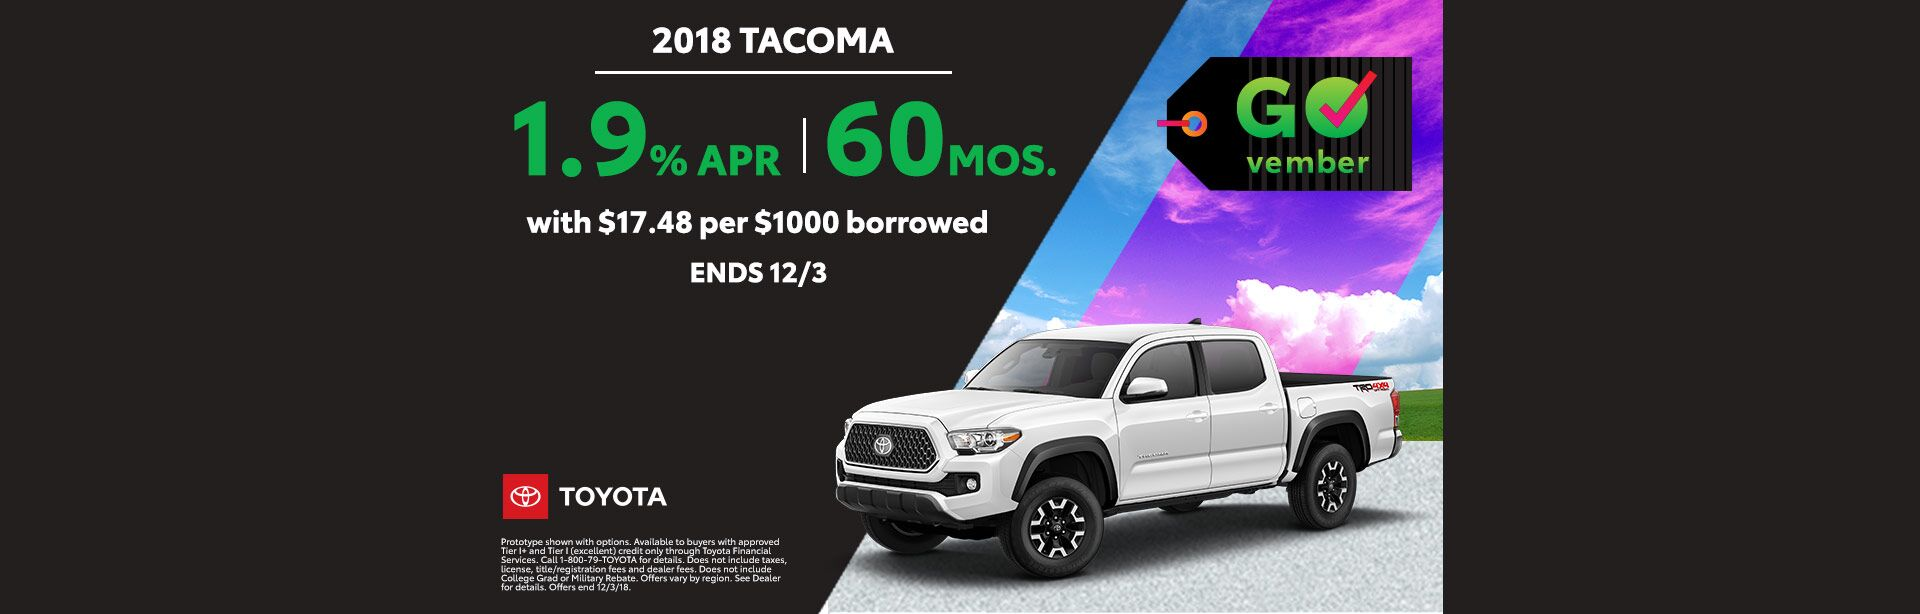 GOvember Tacoma Nov 2018